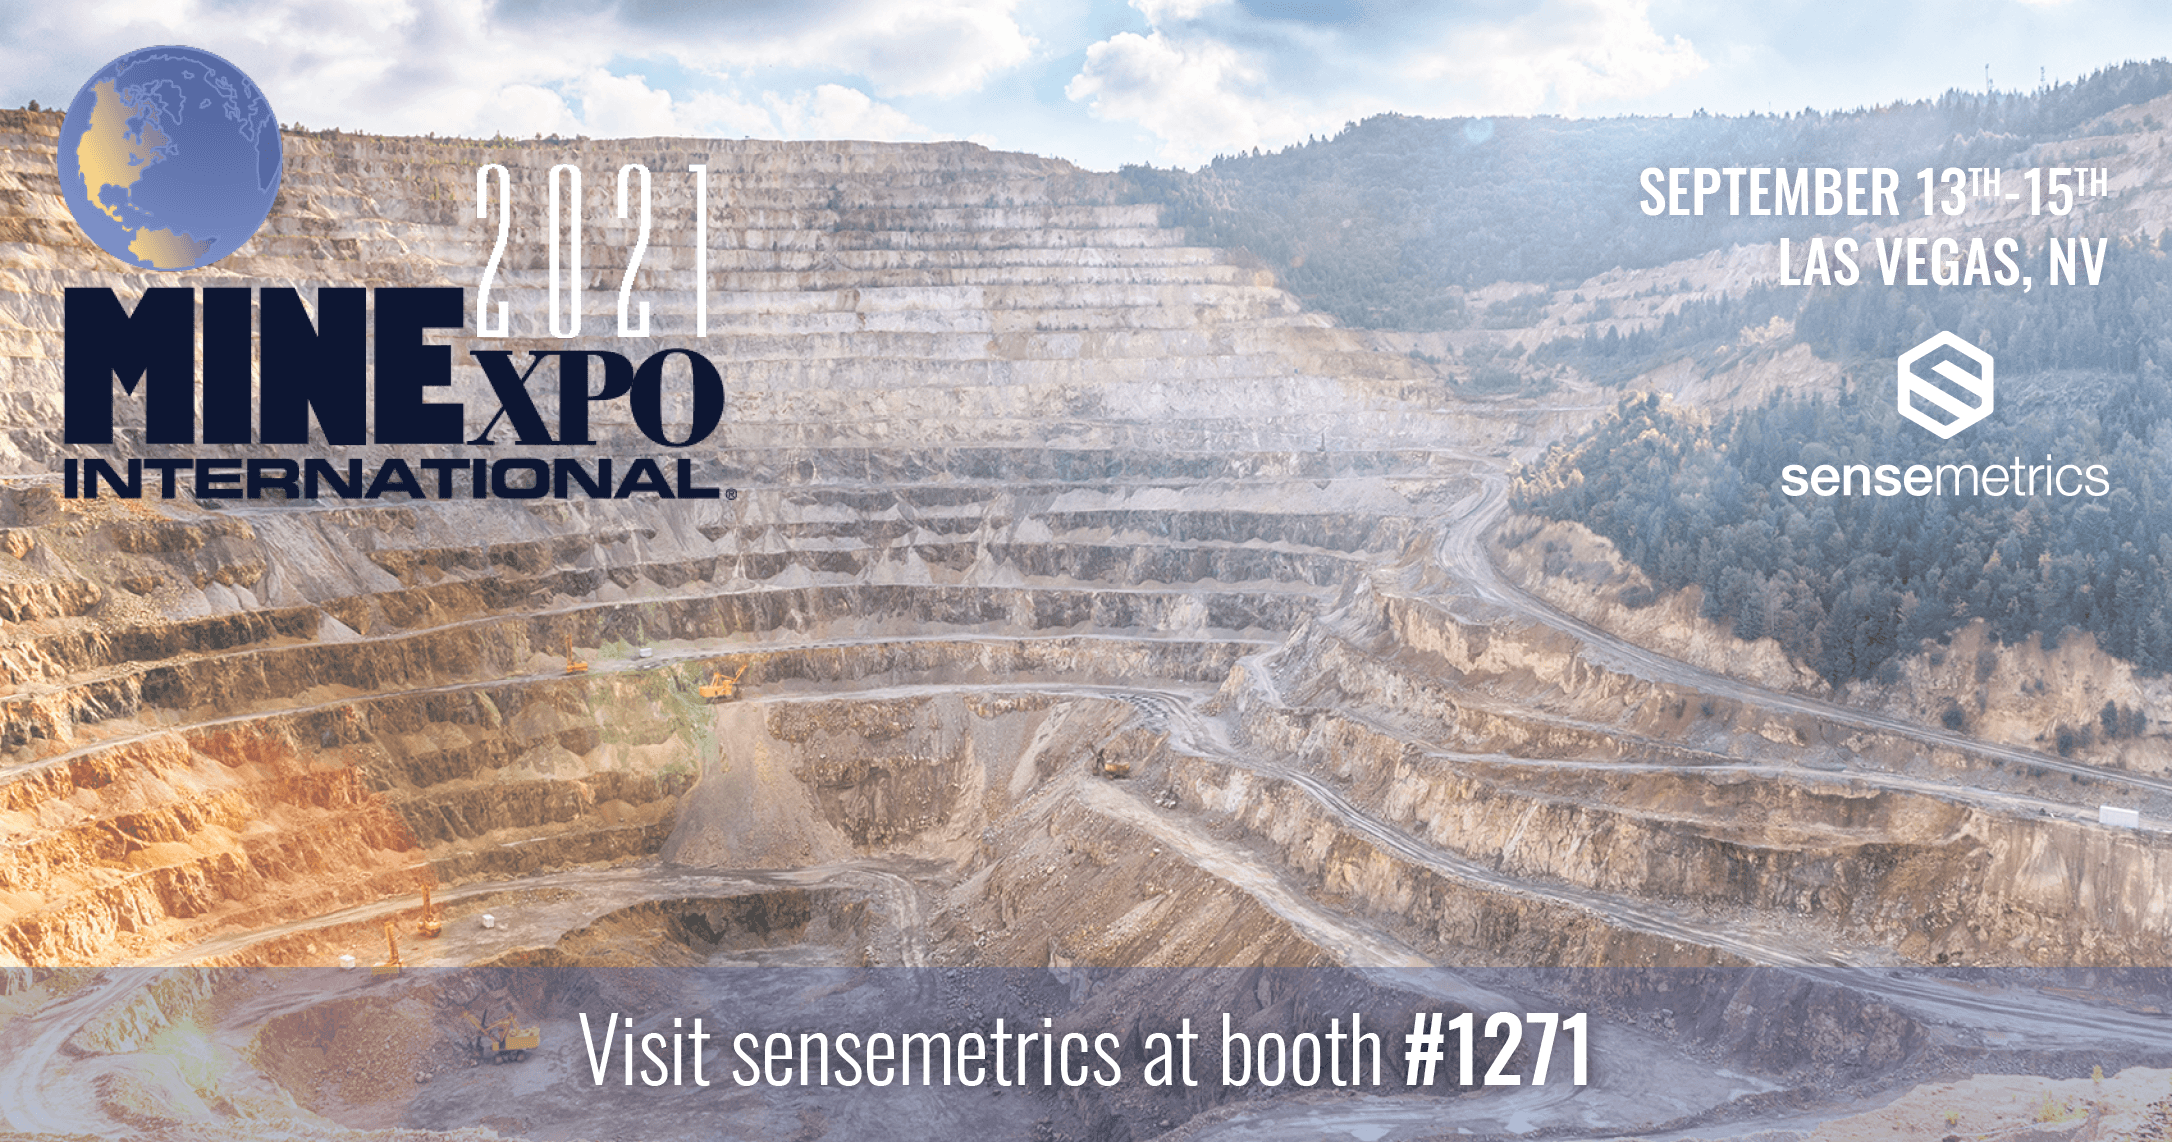 We're Attending MINExpo International 2021 Conference